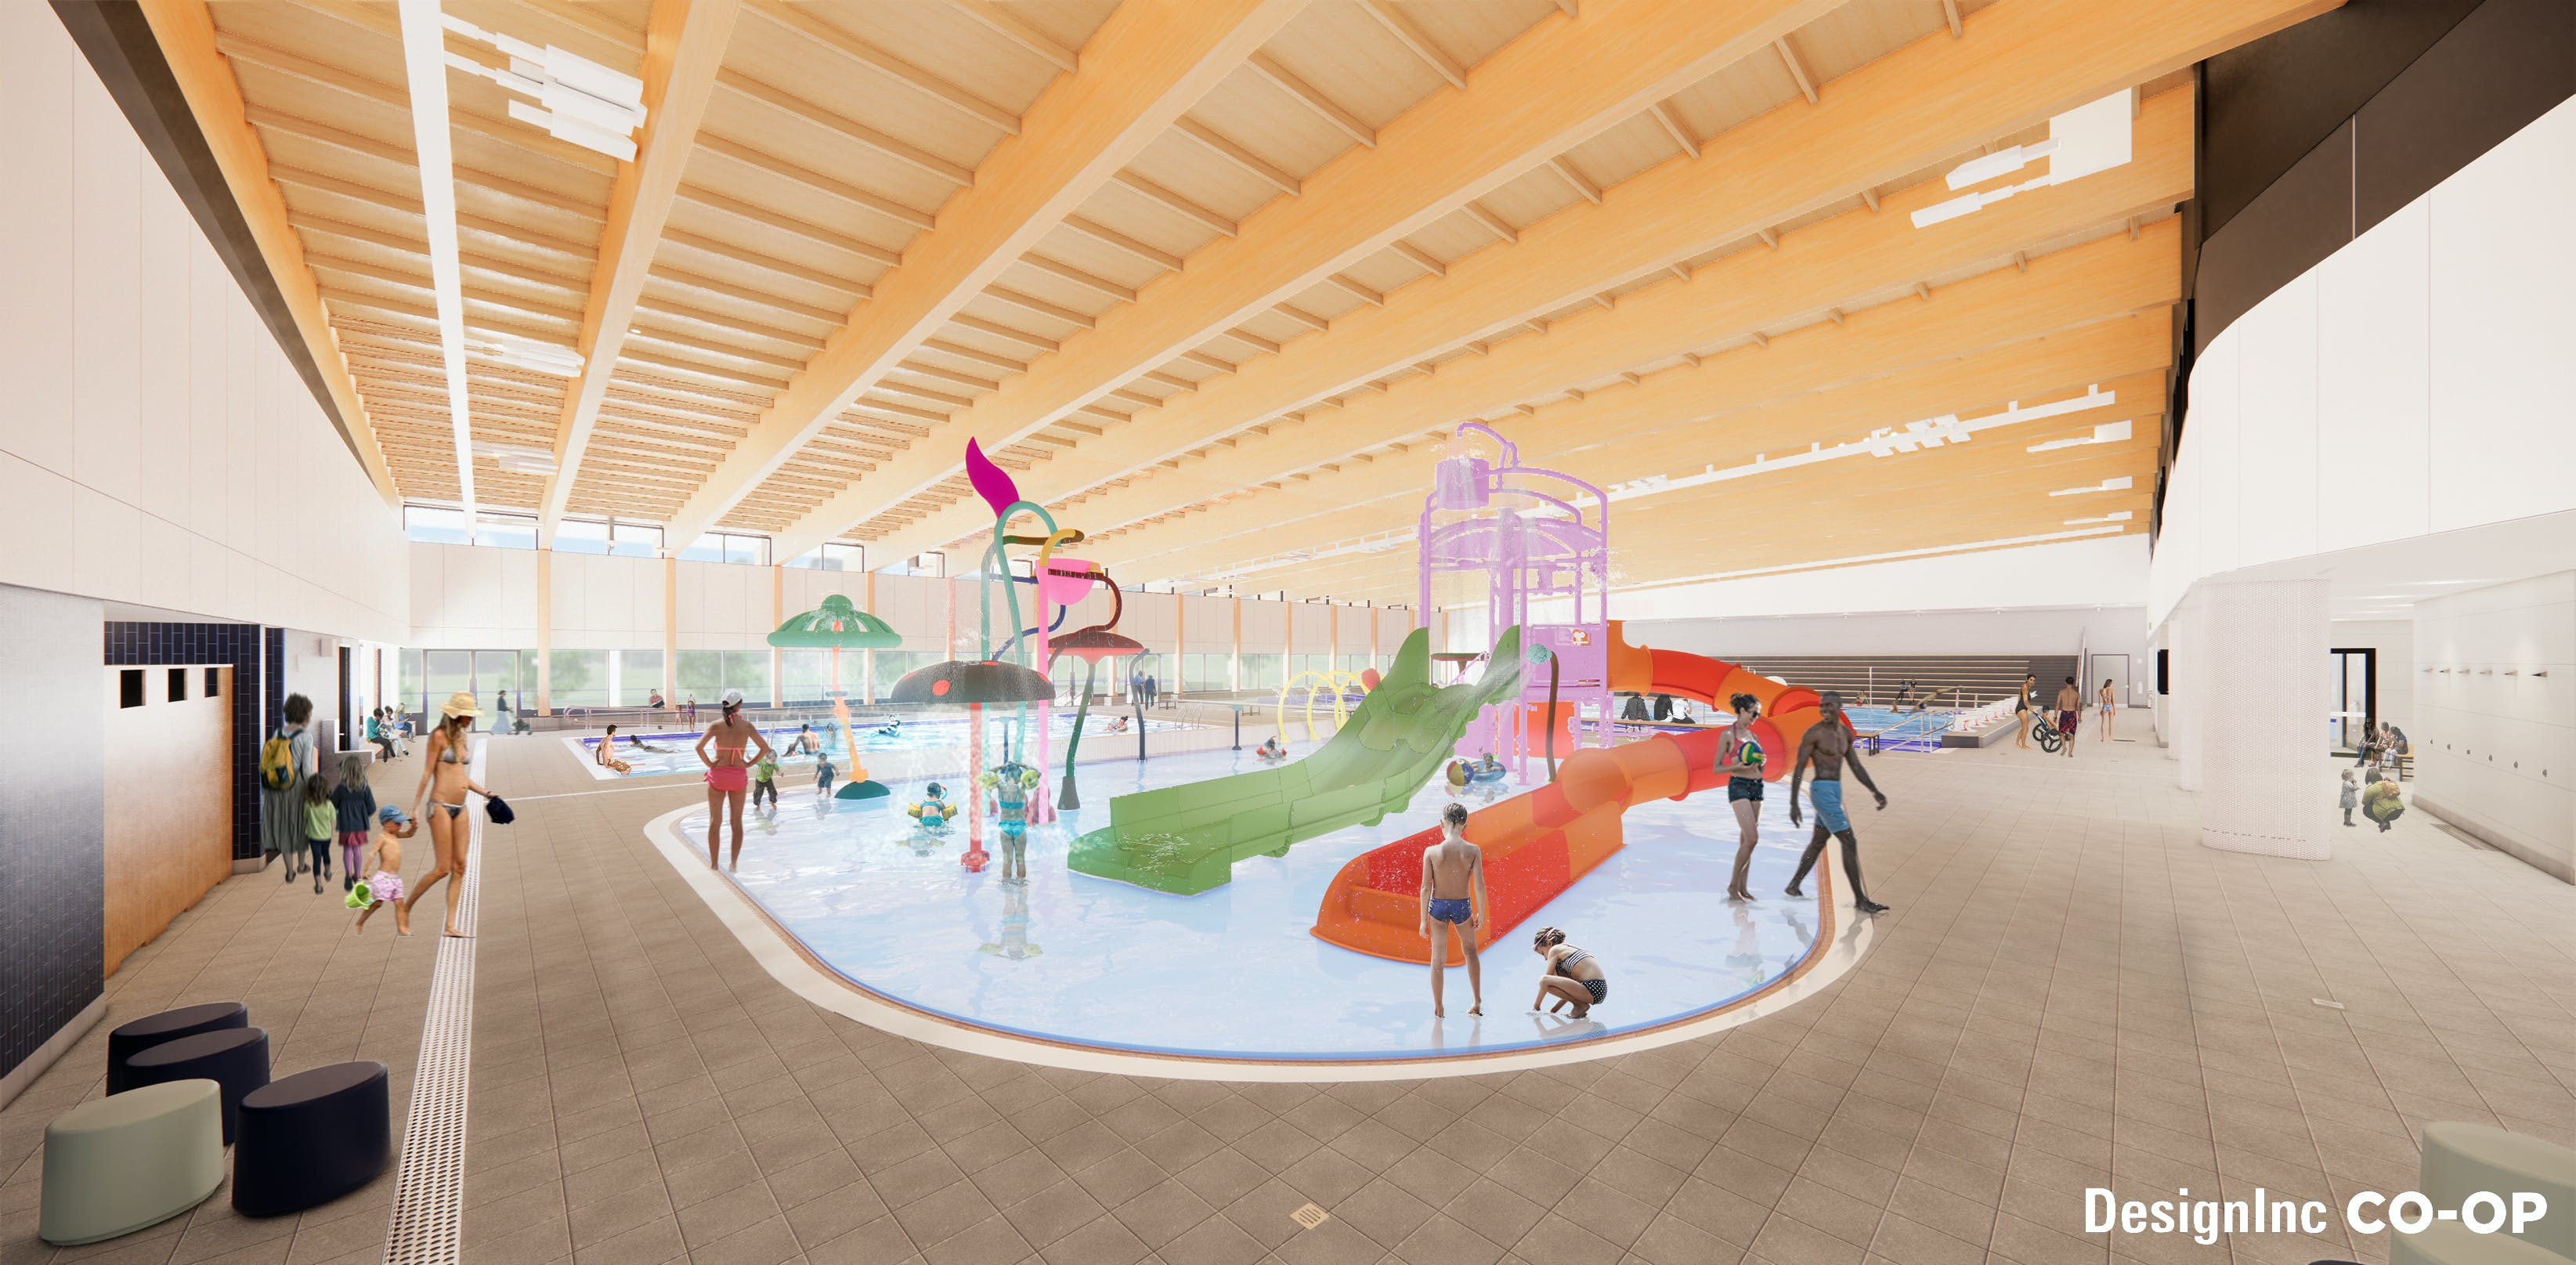 Splash Play Zone - Aquatics Hall